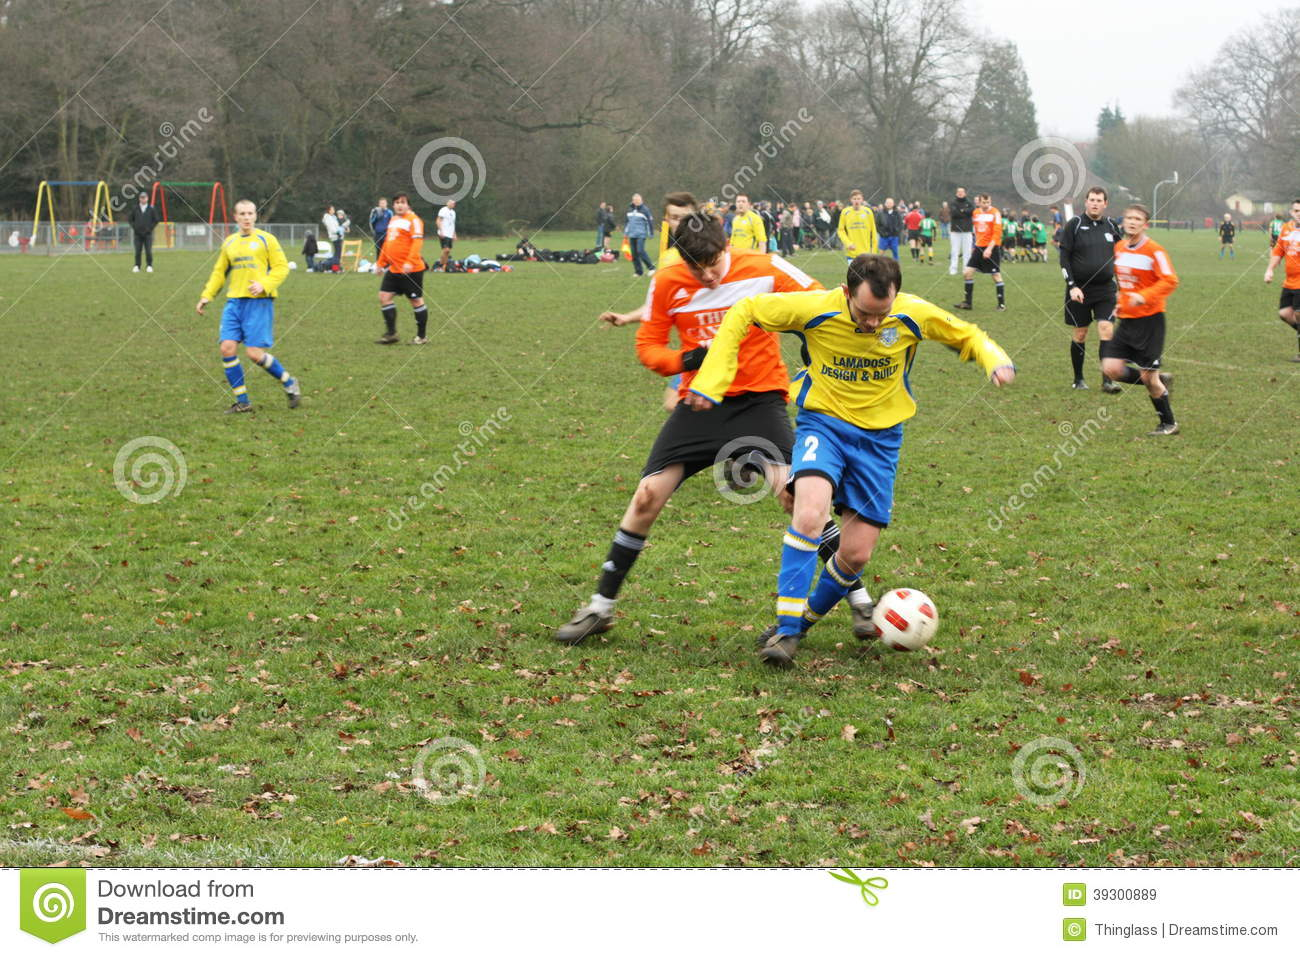 Assured, what Amateur football player look